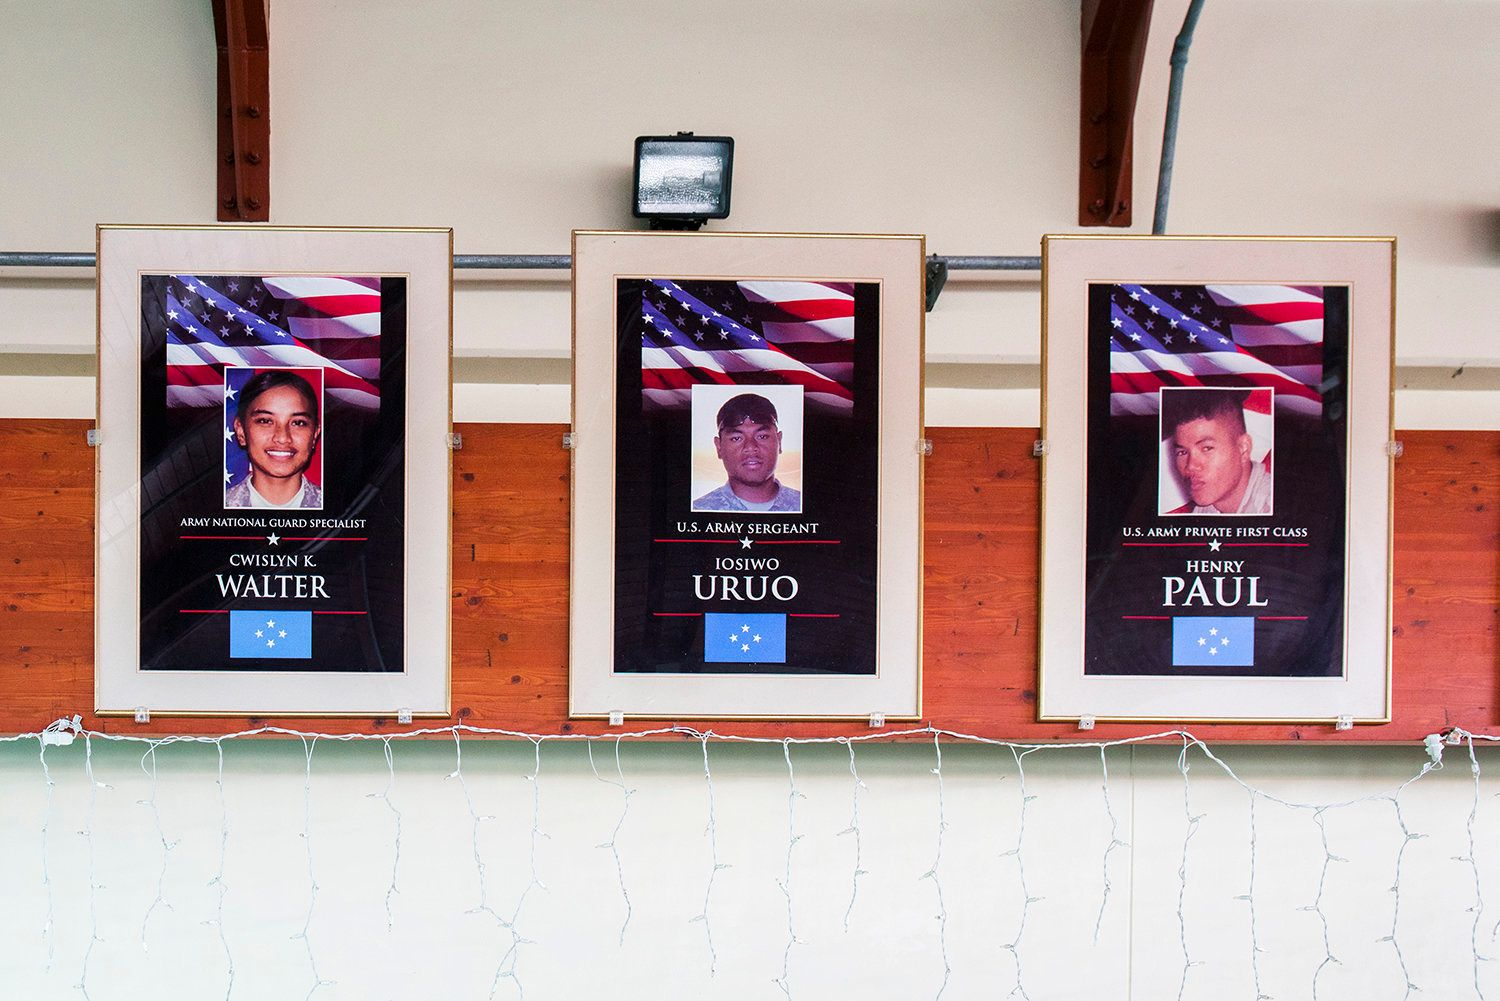 Portraits of fallen Micronesian soldiers hang at the airport on Pohnpei. Both U.S. island territories as well as U.S.-affiliated Micronesian island nations have high per capita rates of deaths in the military.